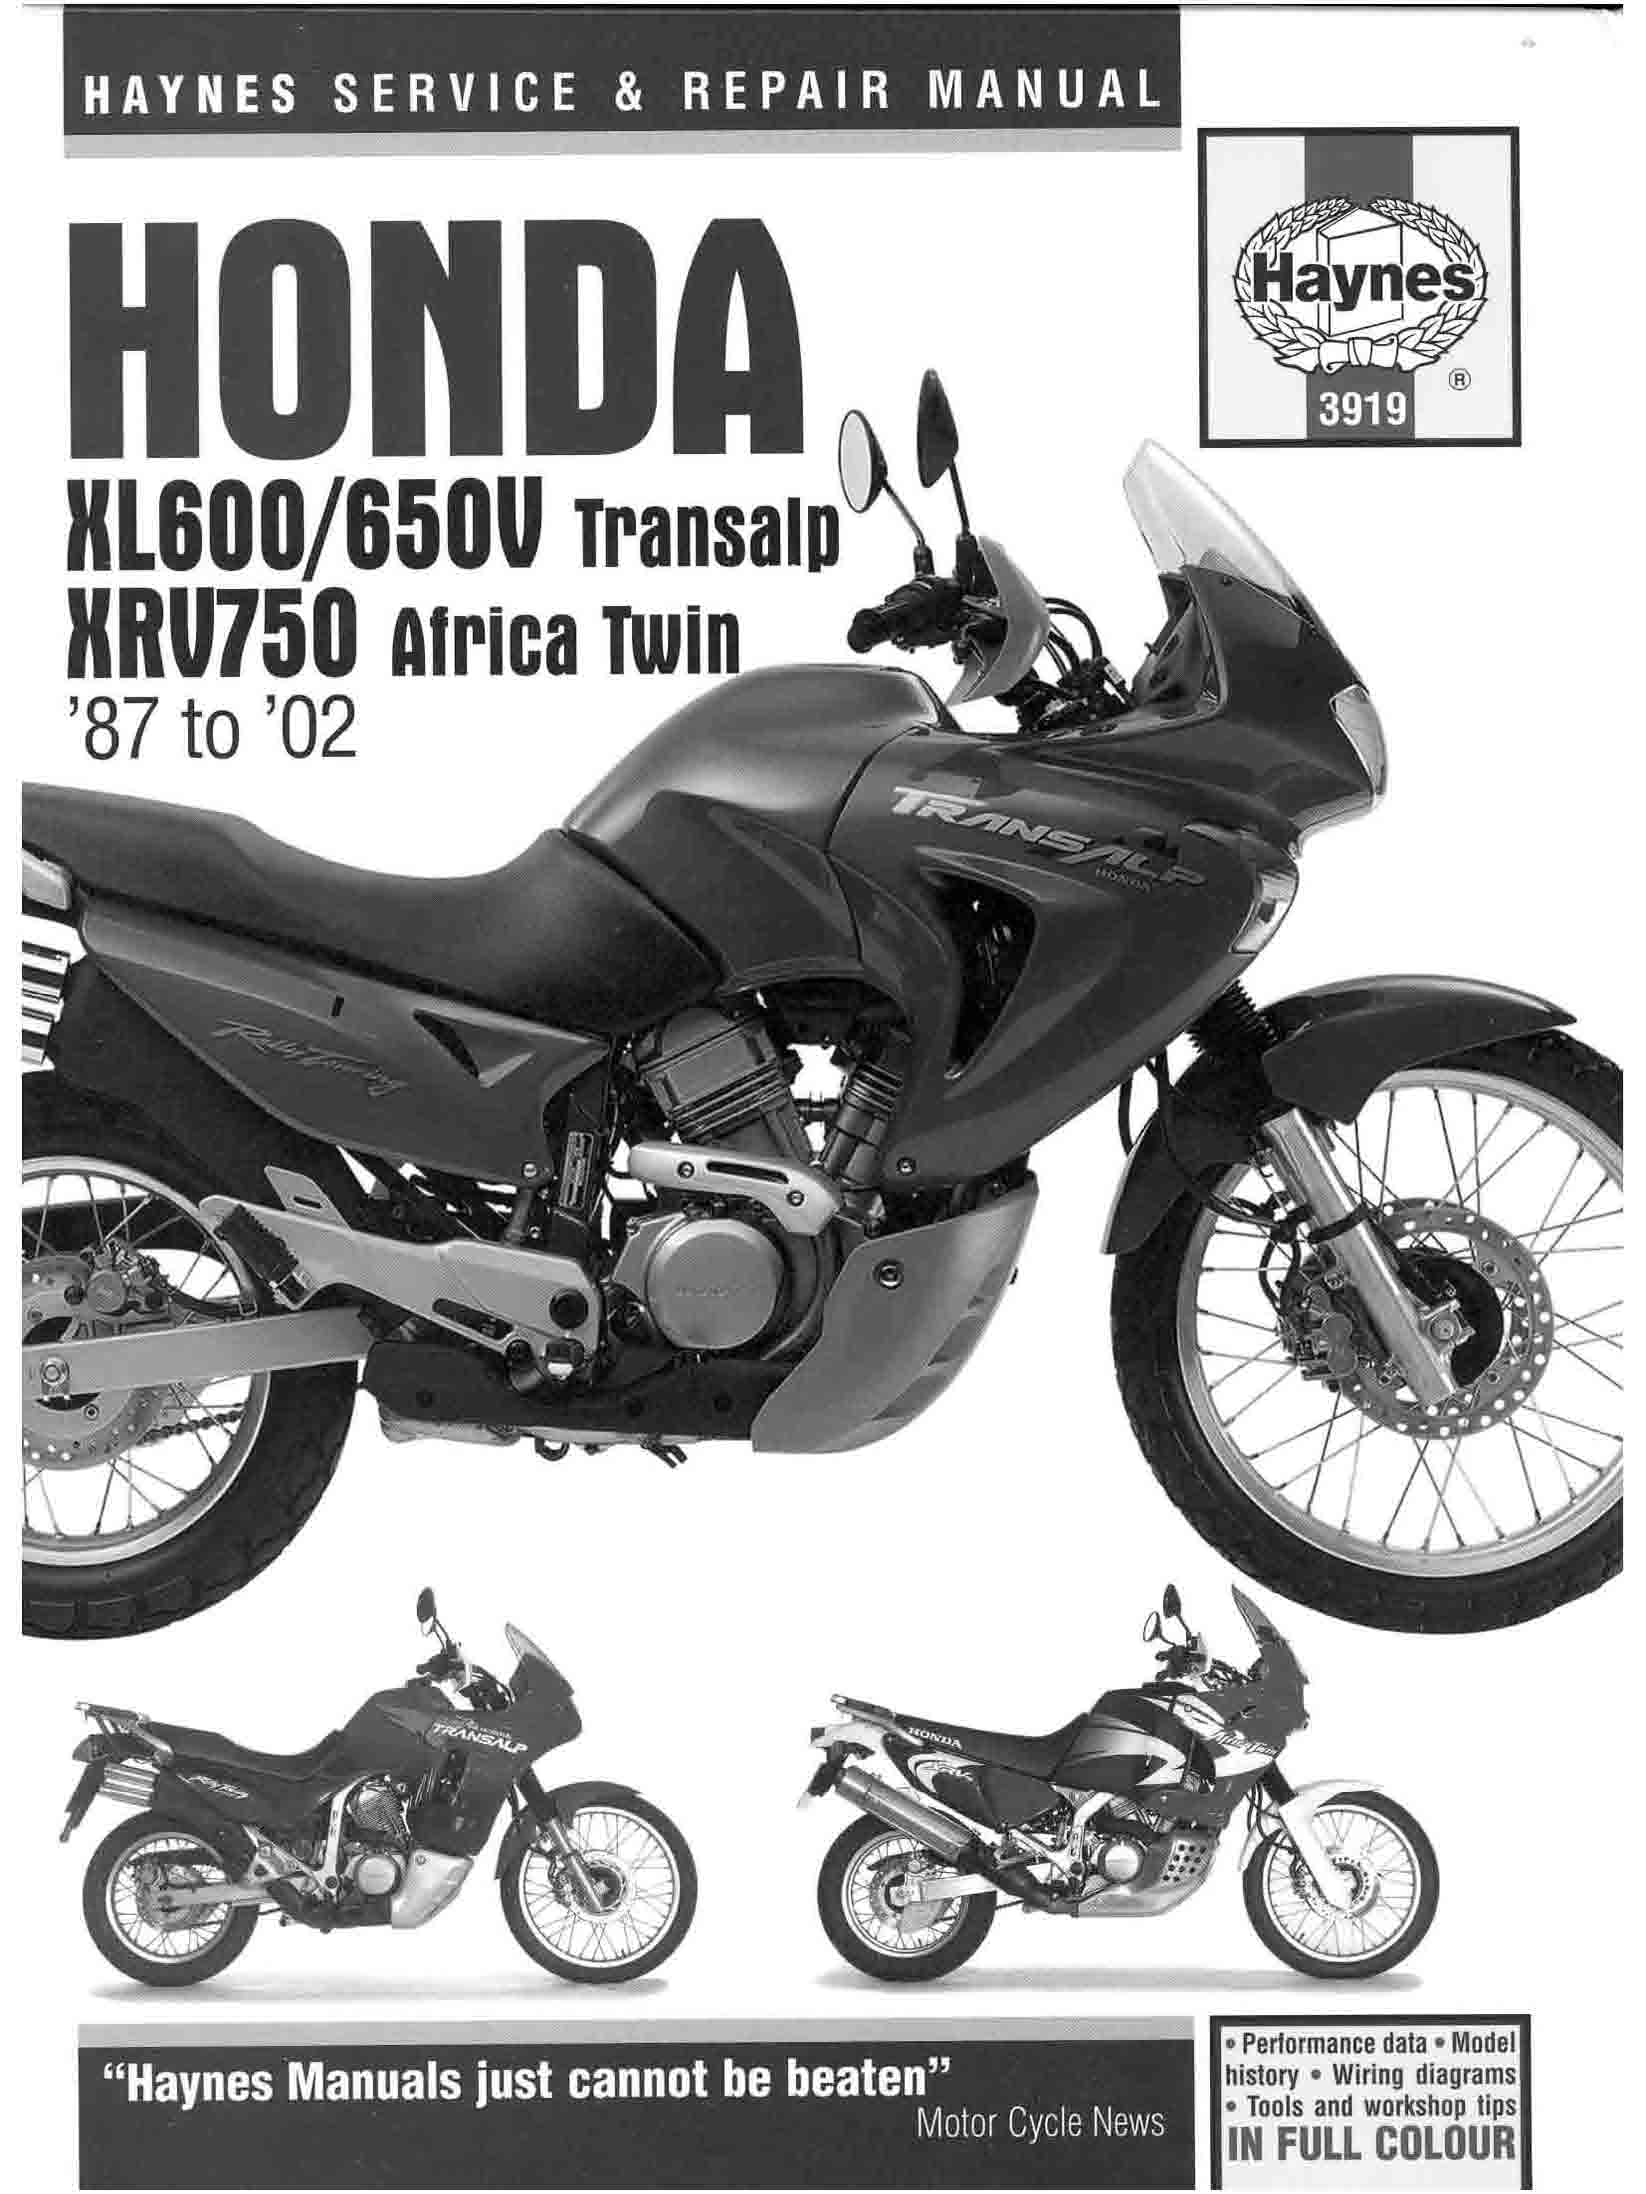 Workshopmanual for Honda XRV750 Africa Twin (1987-2002)